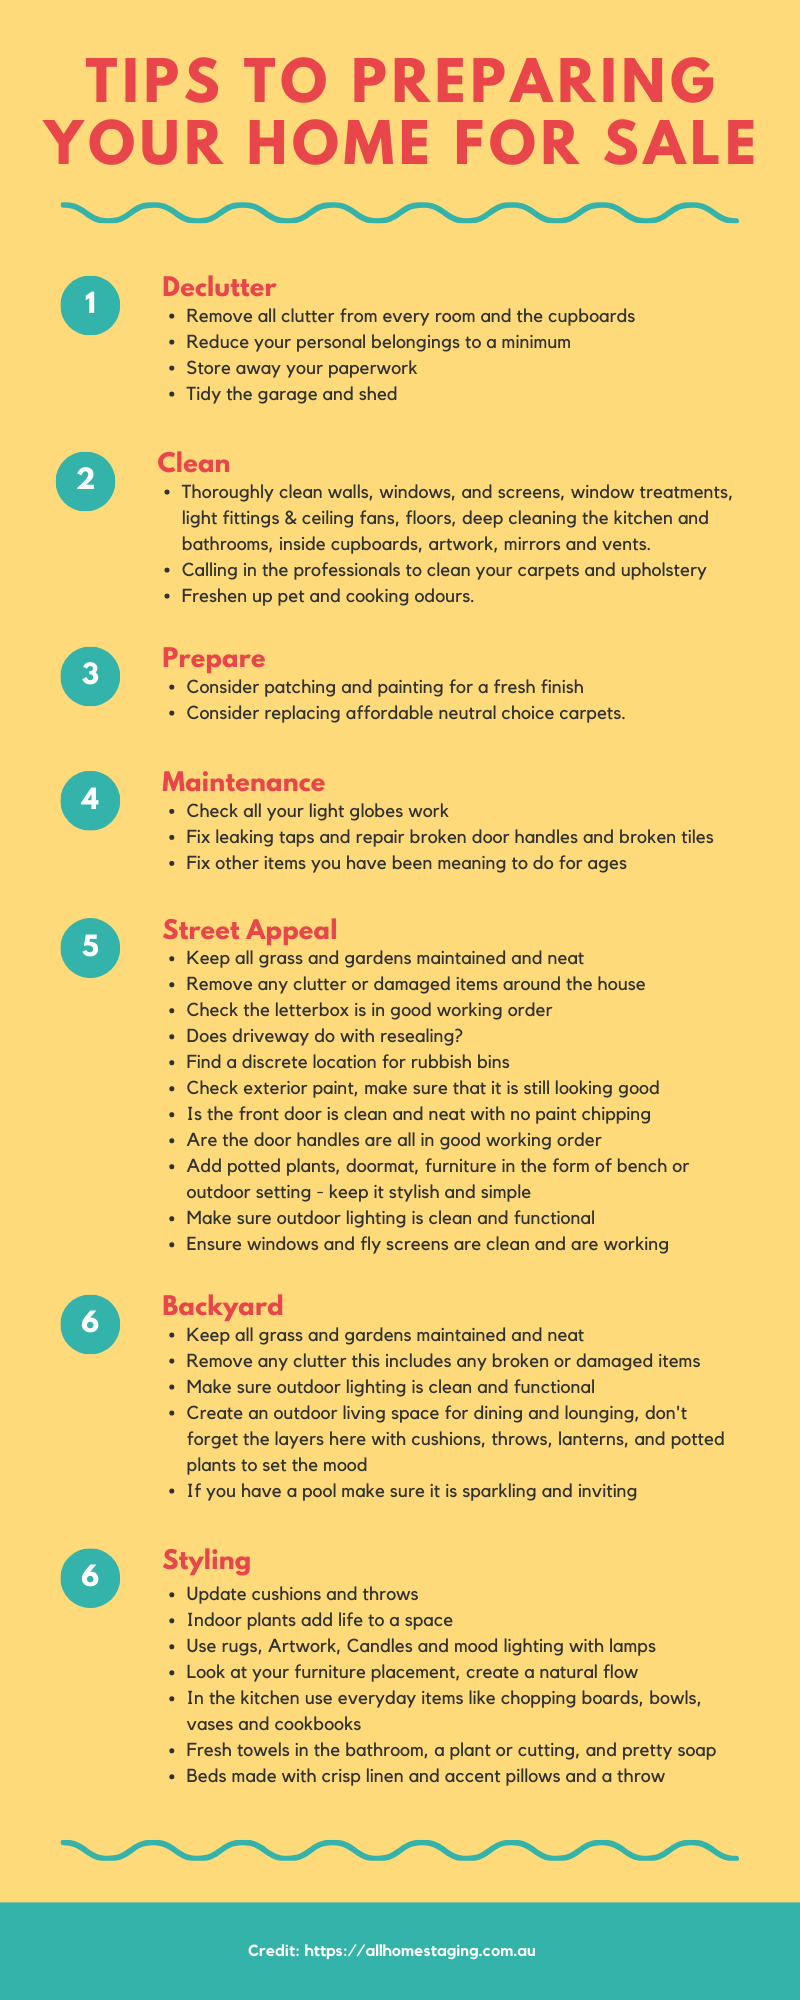 Property Styling Tips to selling your home